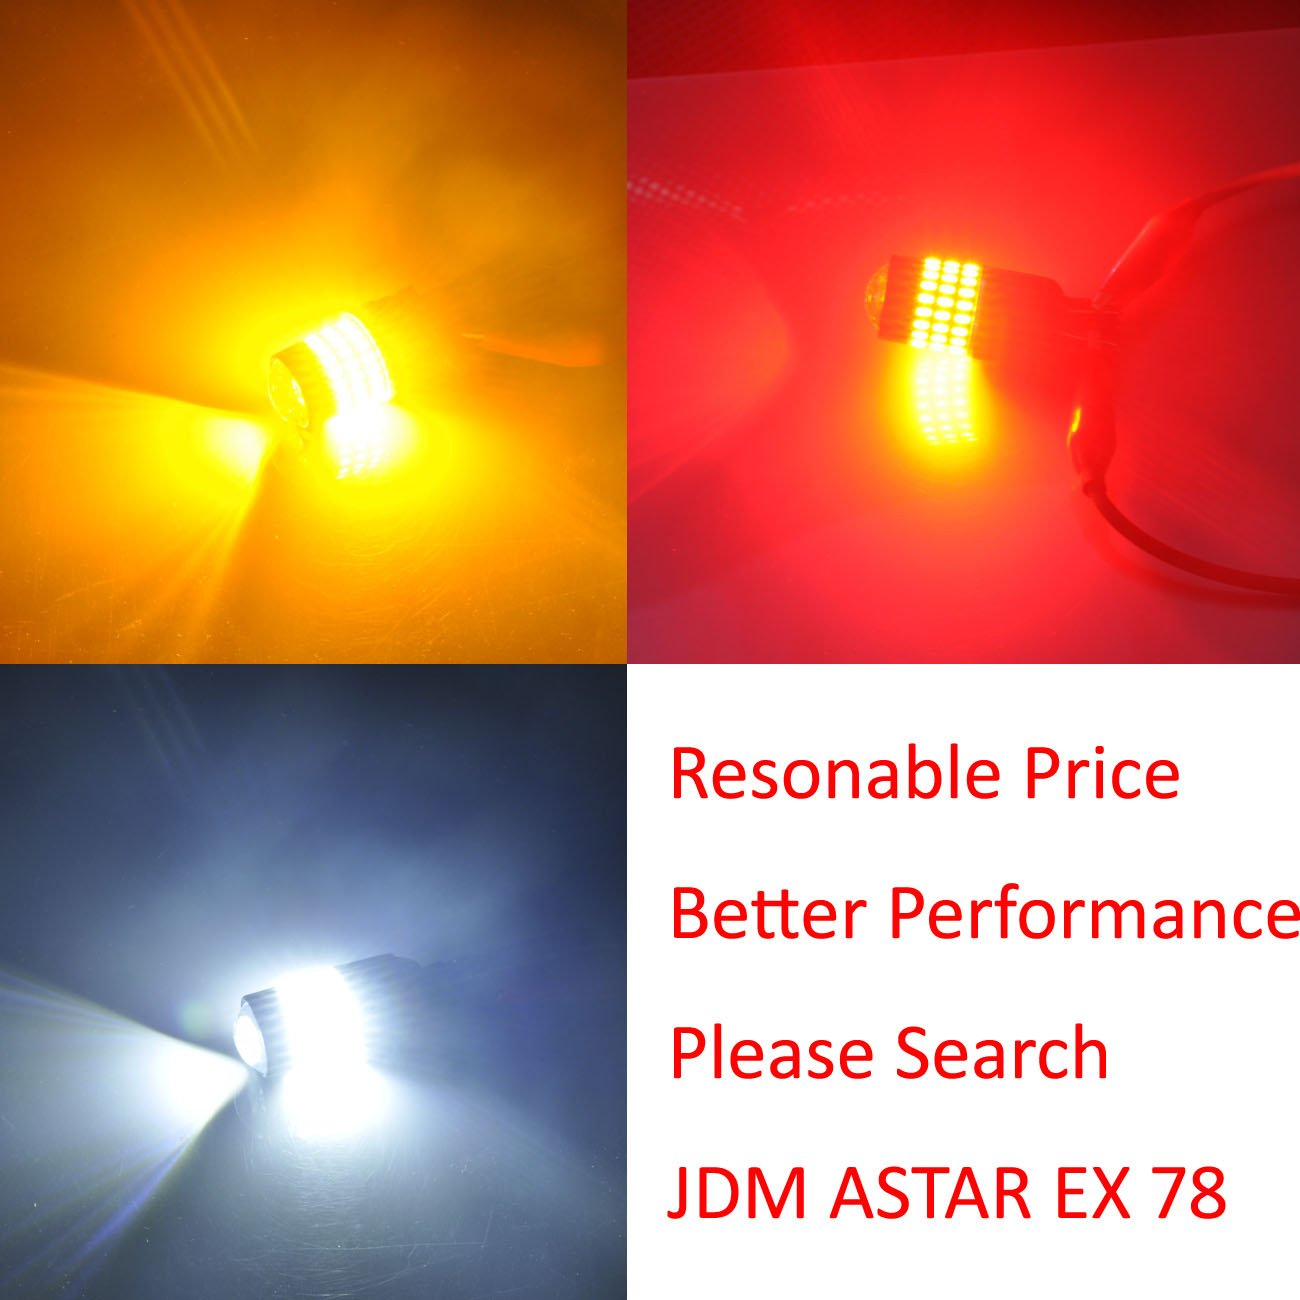 Jdm Astar Super Bright 5730 Chipsets 7507 1156py Bau15s 2003 Suzuki Aerio Gs Sedan In Electric Yellow Click To See Large Led Bulbs With Projectoramber Automotive